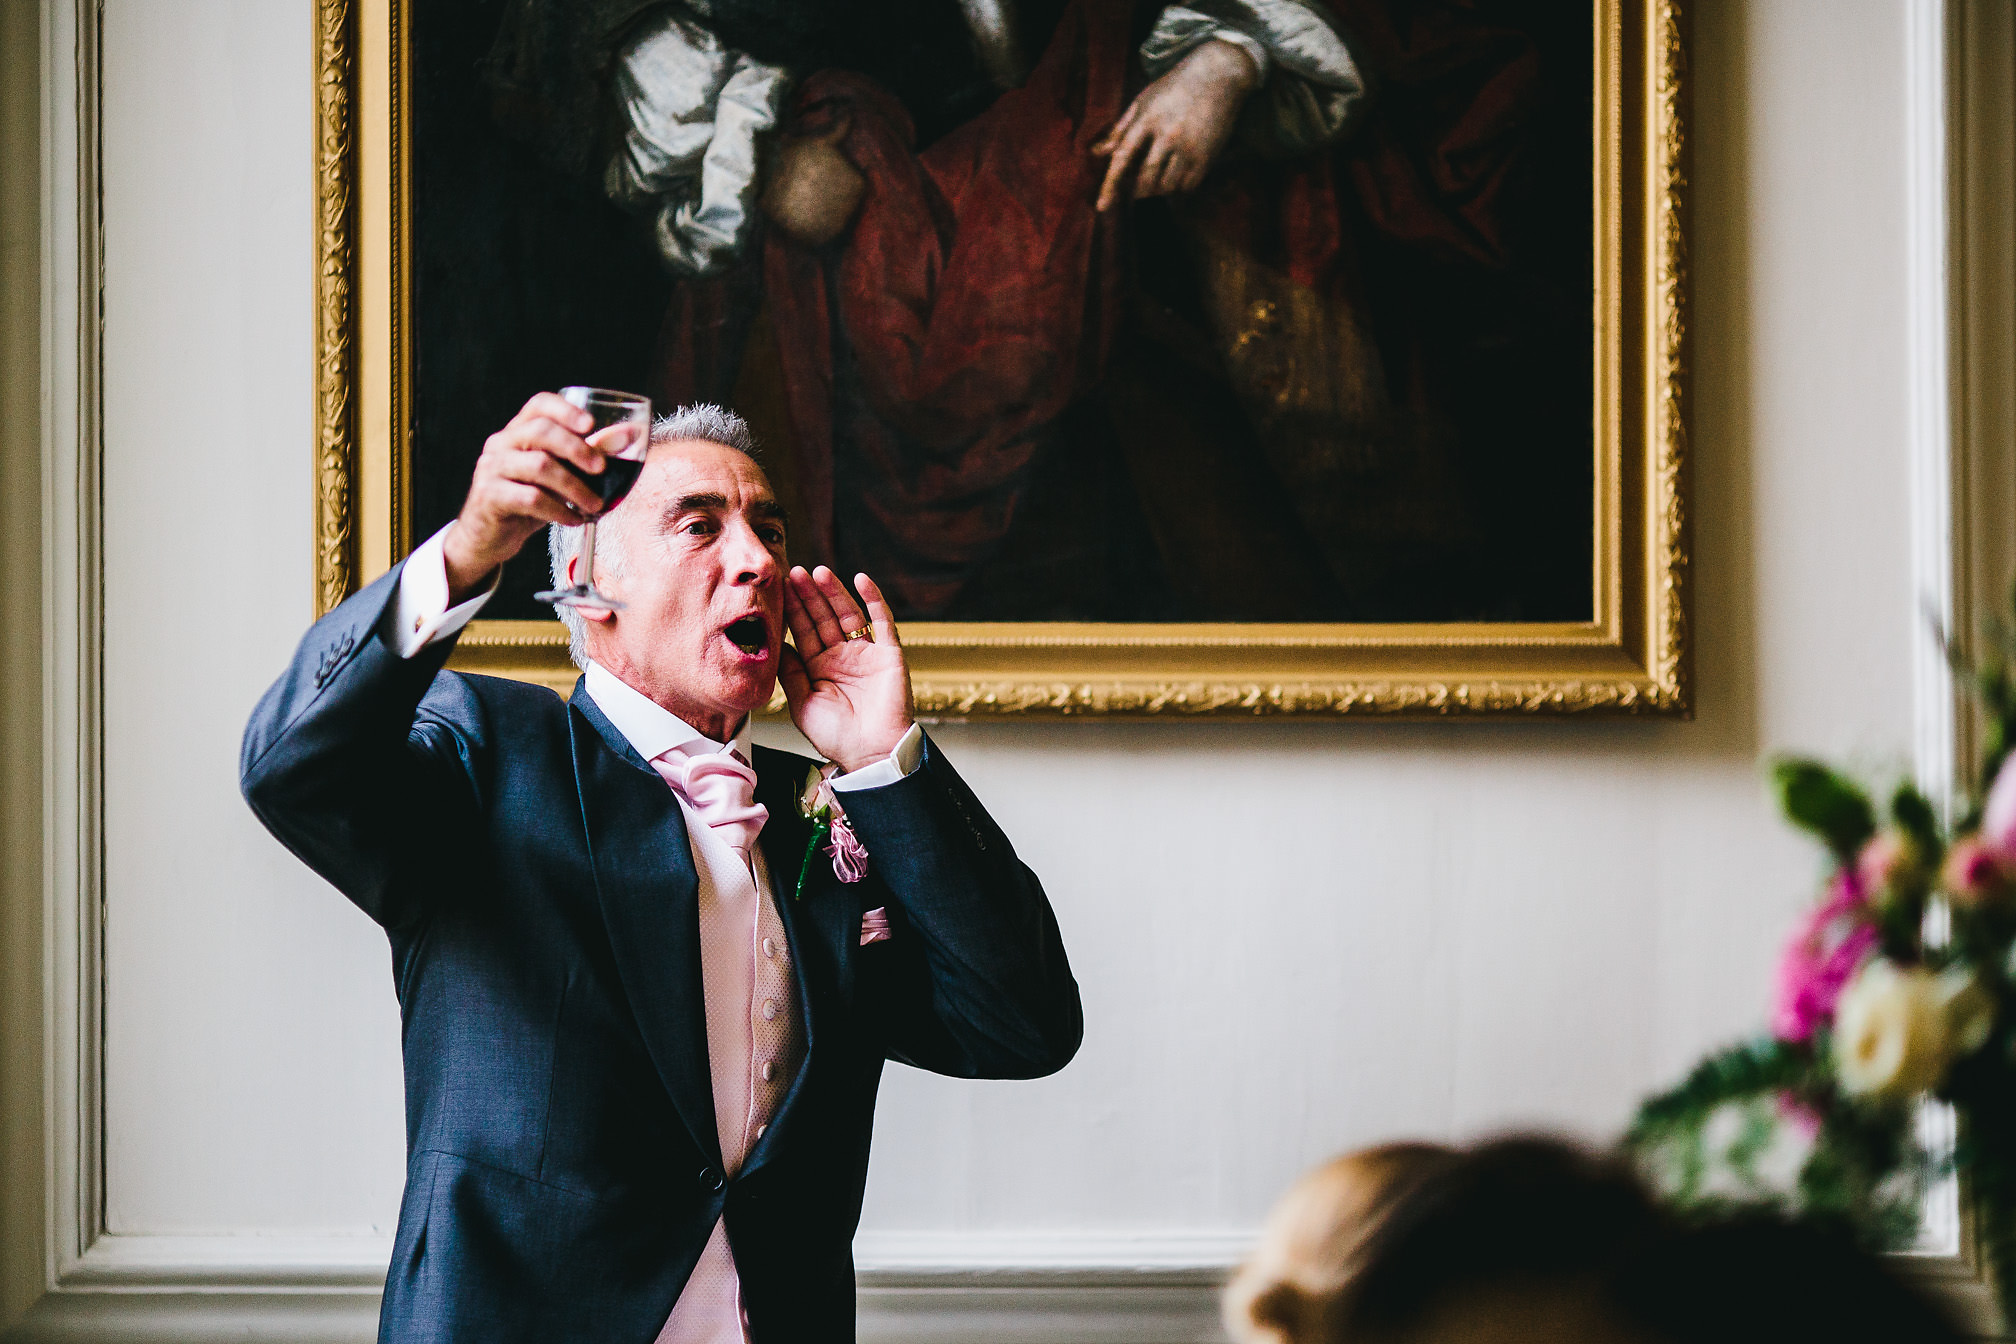 Father of the Groom shouting with a glass of wine